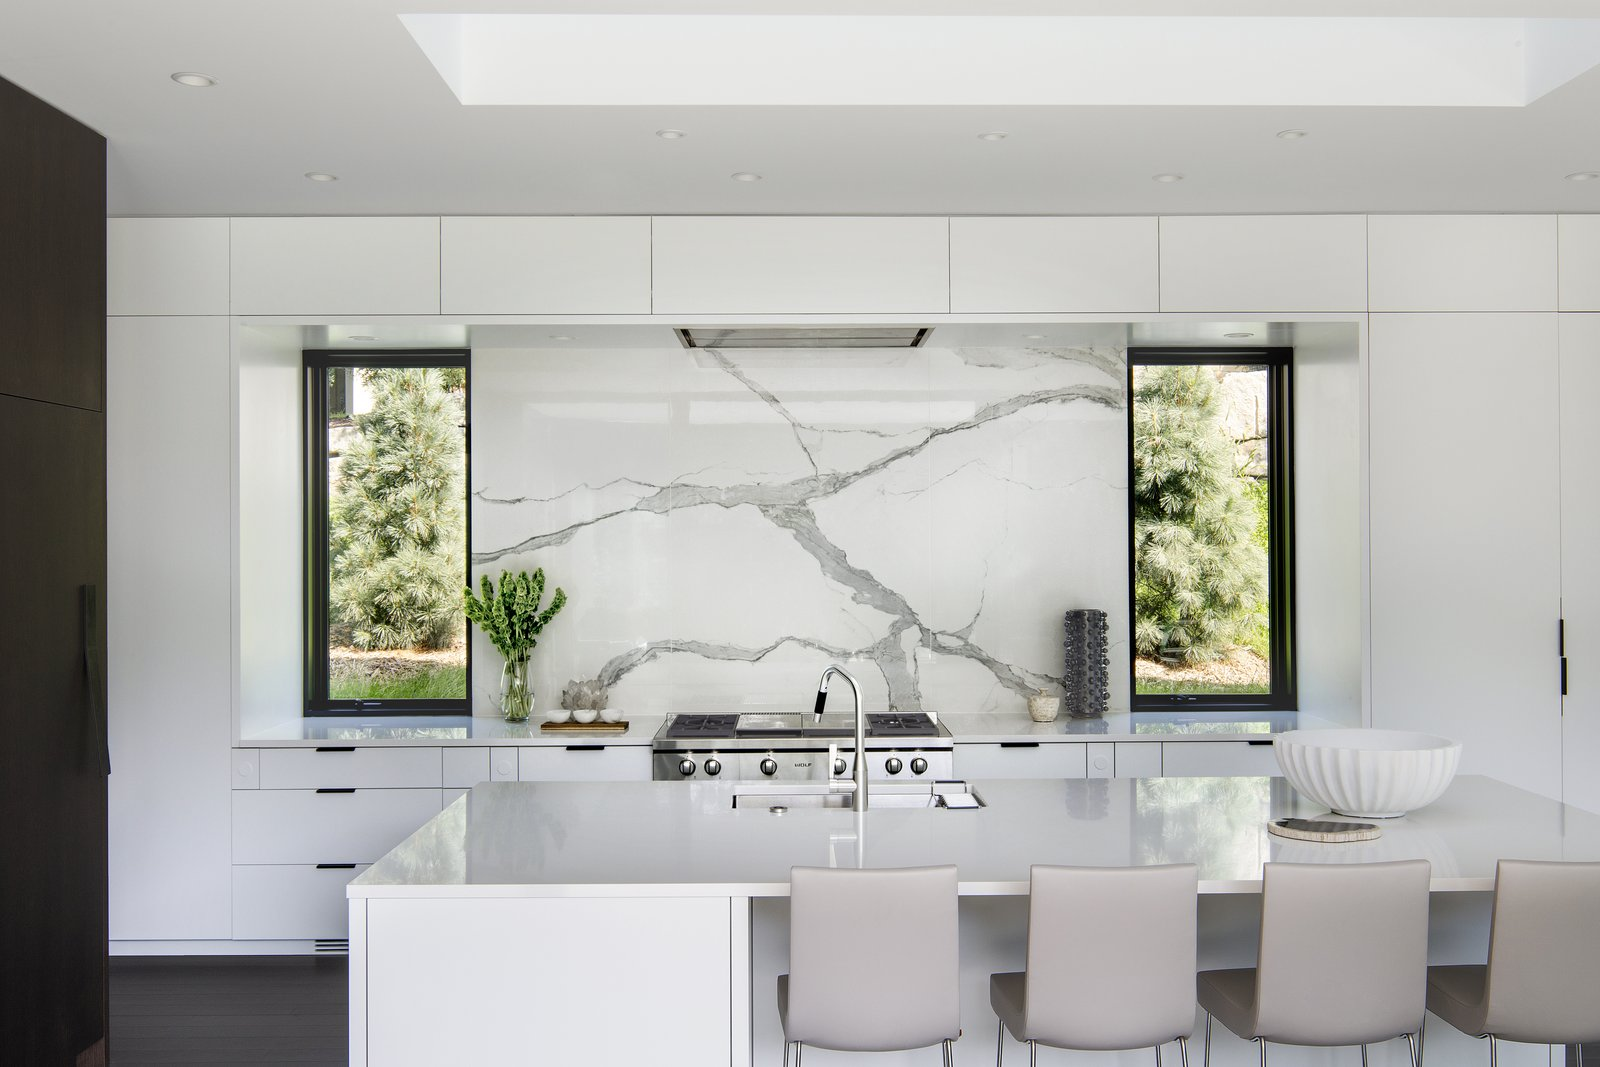 Built on a hilly, South-facing site populated with mature heritage trees in an established neighborhood, this home finds its sophisticated form through the traditional motifs. The highly linear, open floor plan is adorned with chic finishes, including a sleek wall of custom cabinetry.   Tagged: Kitchen, Engineered Quartz, White, Dark Hardwood, Stone Slab, Range, Undermount, Wall Oven, and Recessed.  Best Kitchen Engineered Quartz Undermount Photos from Huntington Residence